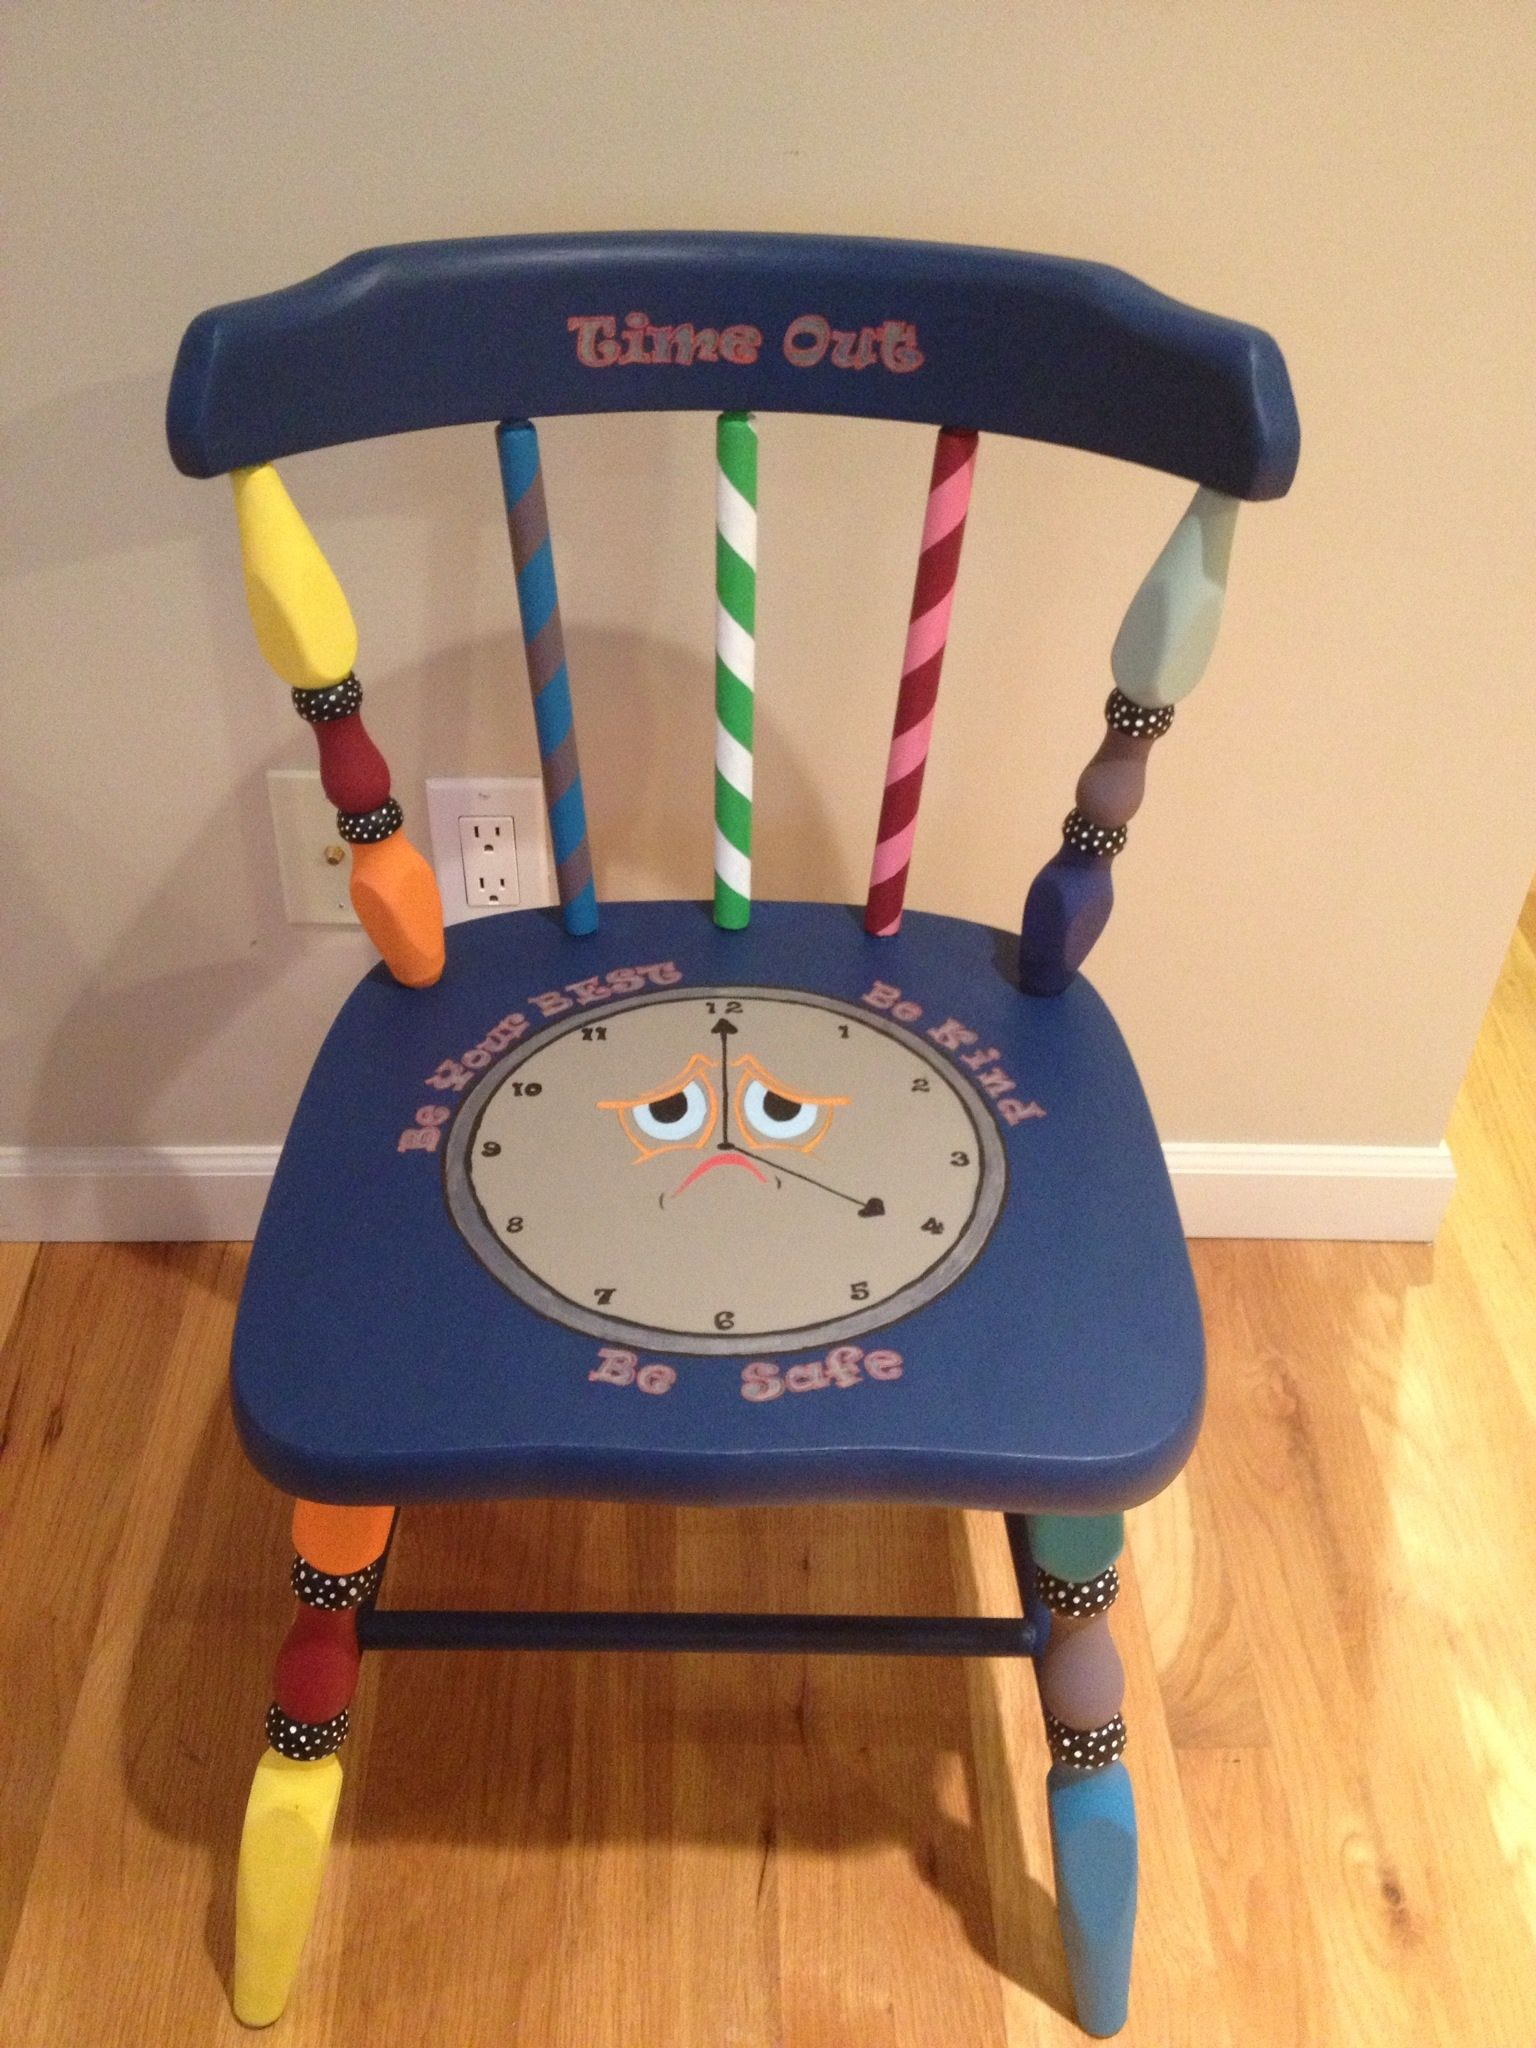 kids time out chair white plastic folding chairs hand painted colorful and whimsical